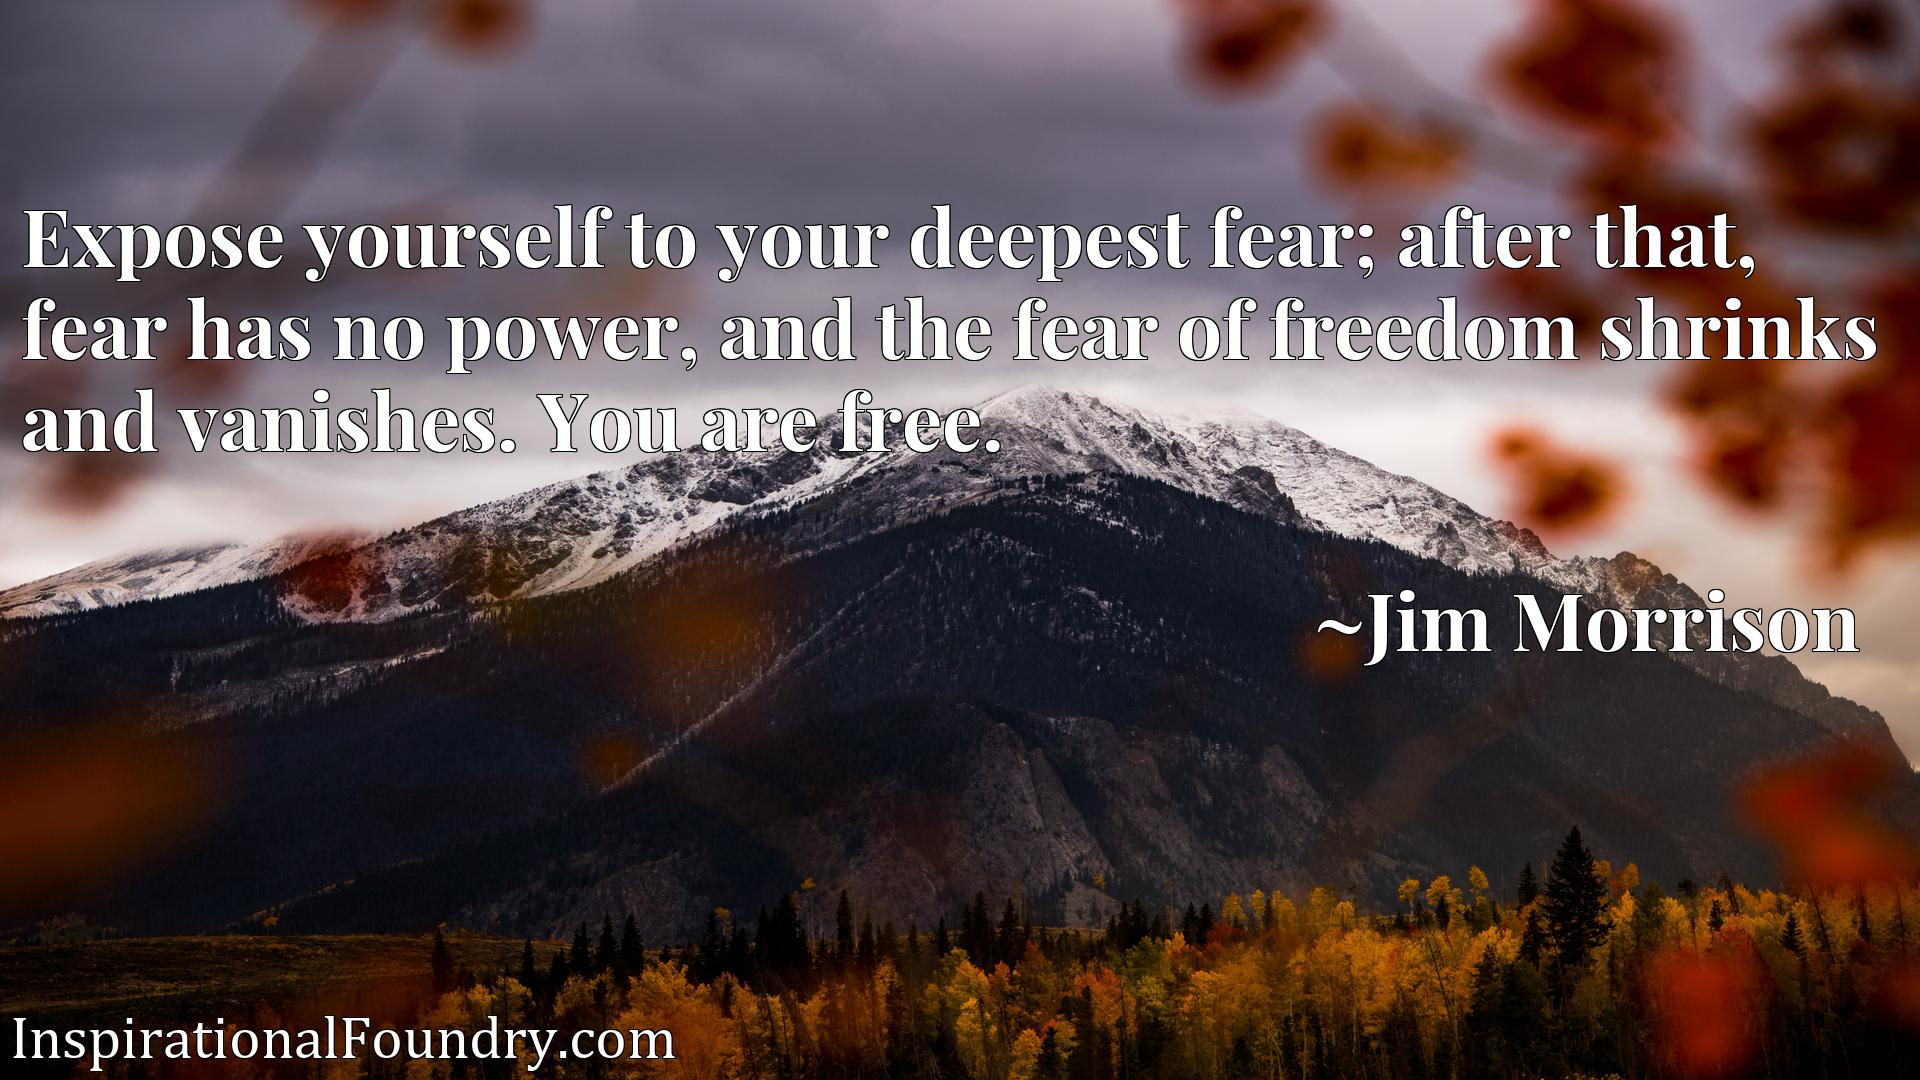 Expose yourself to your deepest fear; after that, fear has no power, and the fear of freedom shrinks and vanishes. You are free.